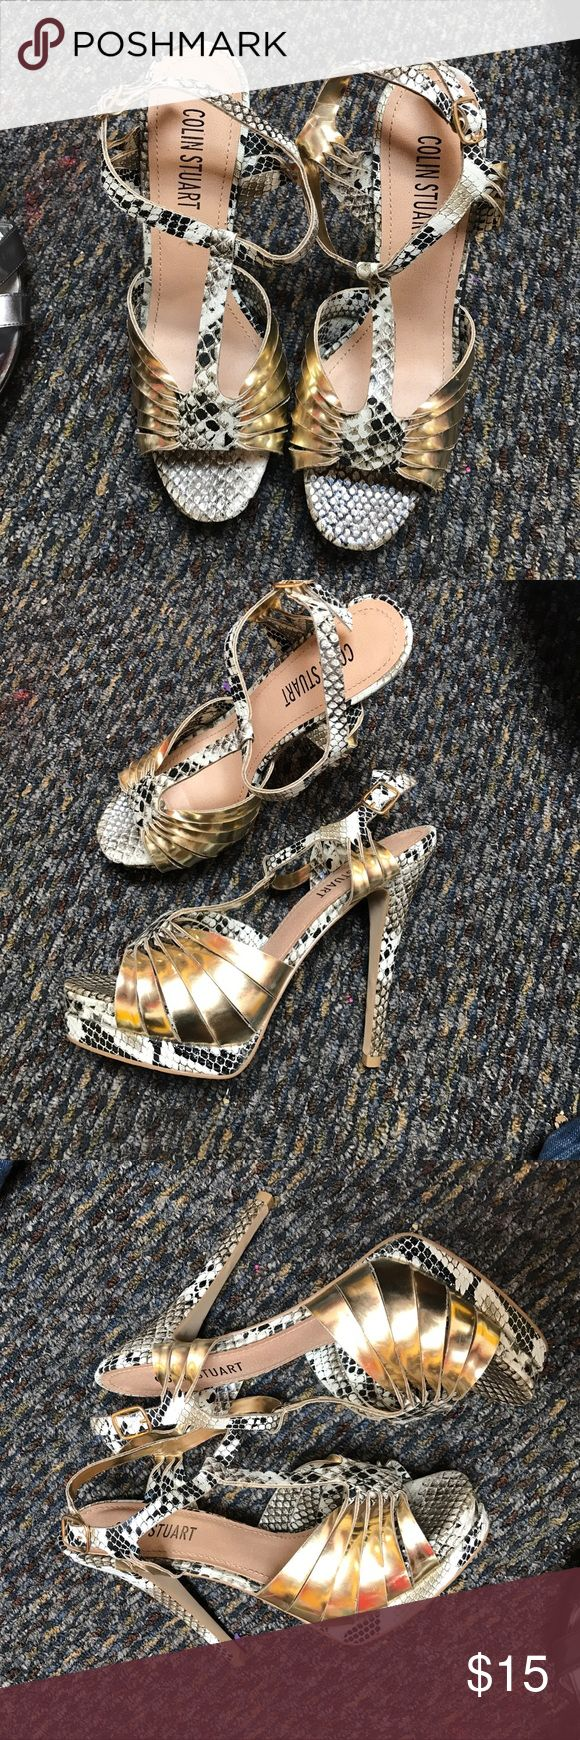 Colin Stuart Heels Great condition like new Colin Stuart heels I purchased from Victoria secret catalogue Colin Stuart Shoes Heels